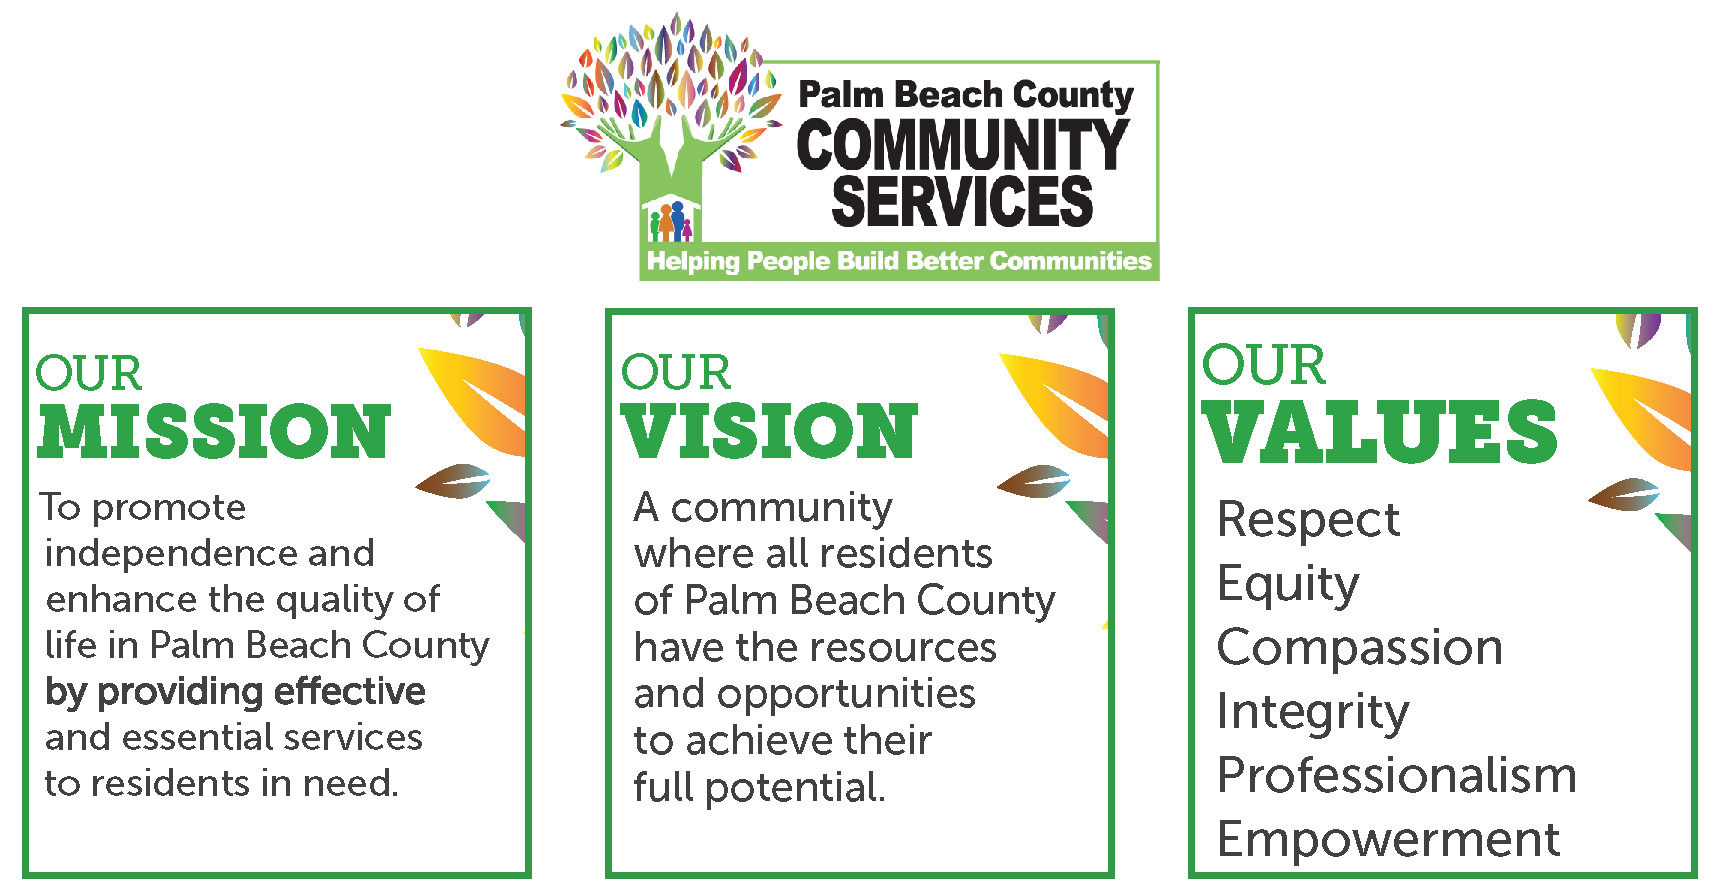 Community Services - Mission, Vision, Values